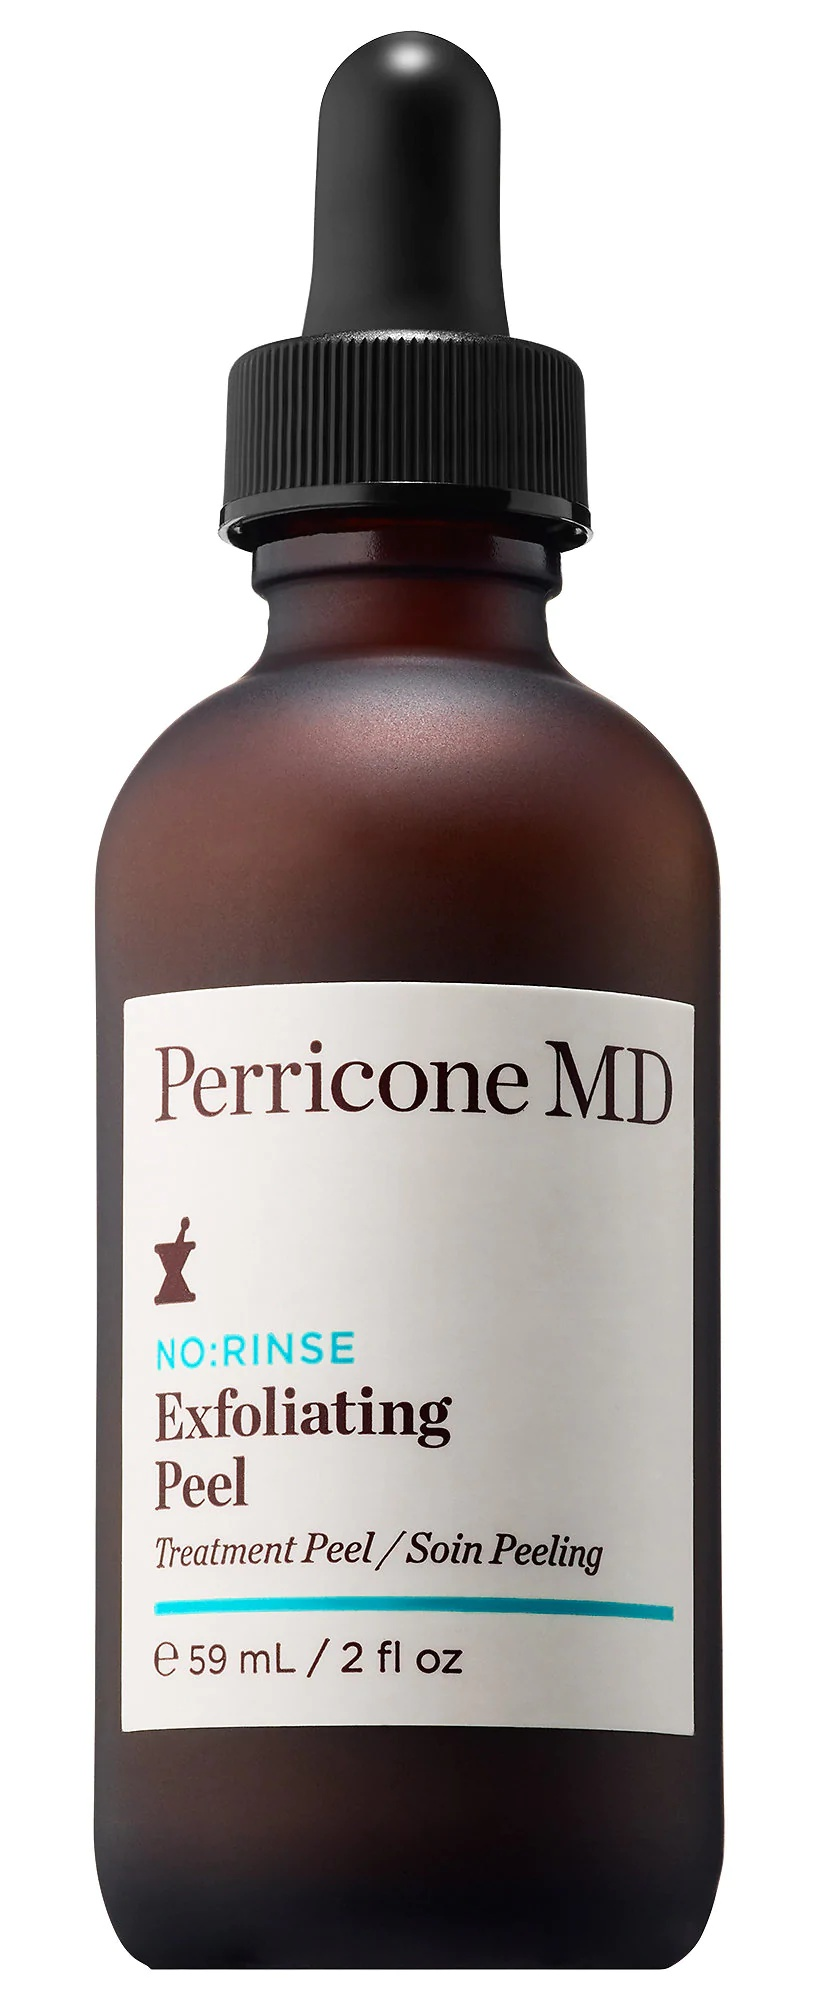 Perricone MD No:Rinse Exfoliating Peel